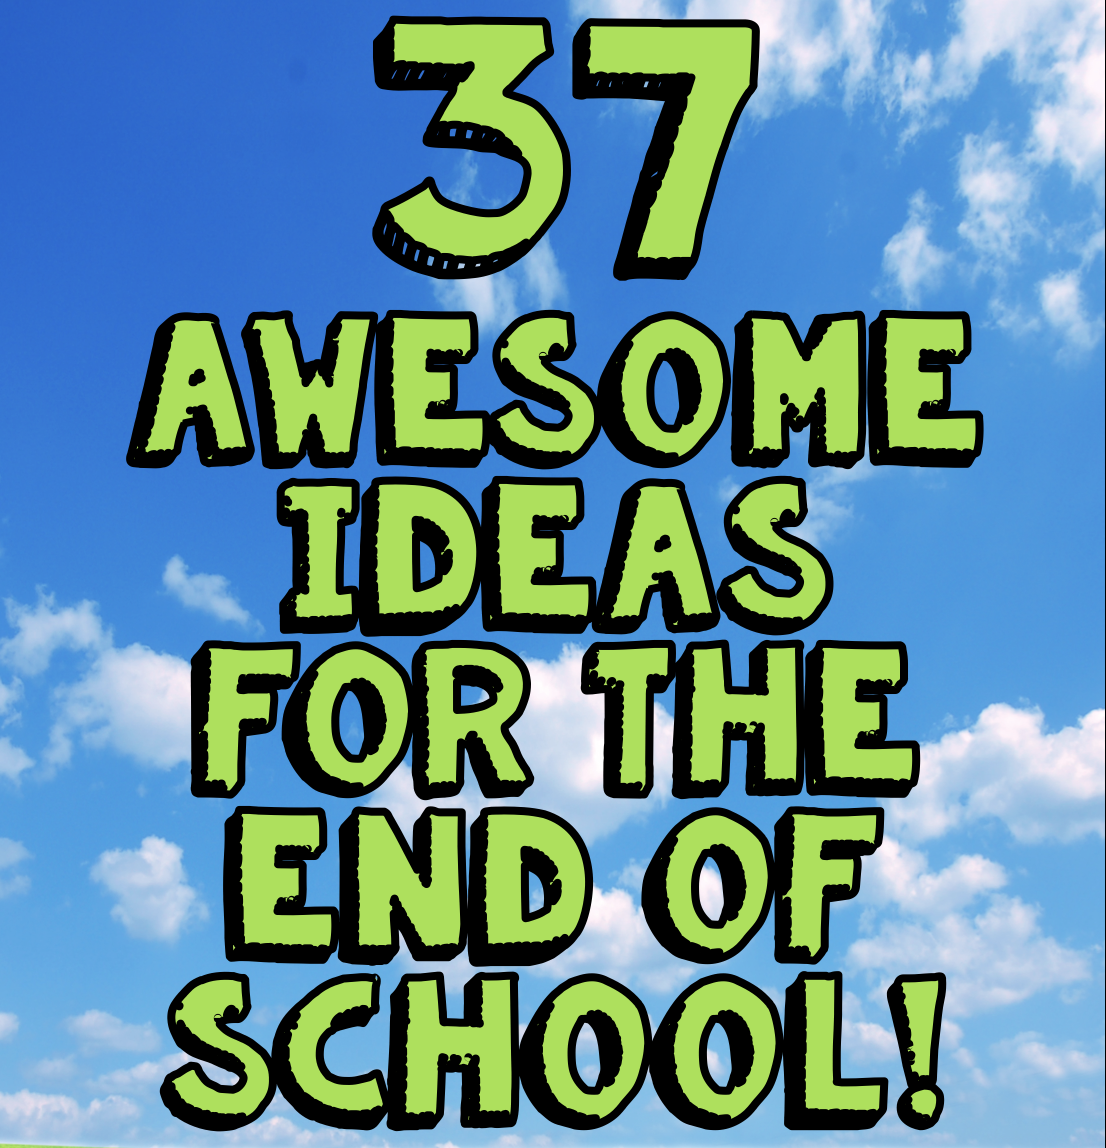 May The Fourth Be With You School Activities: 37 Awesome End Of The Year Activities